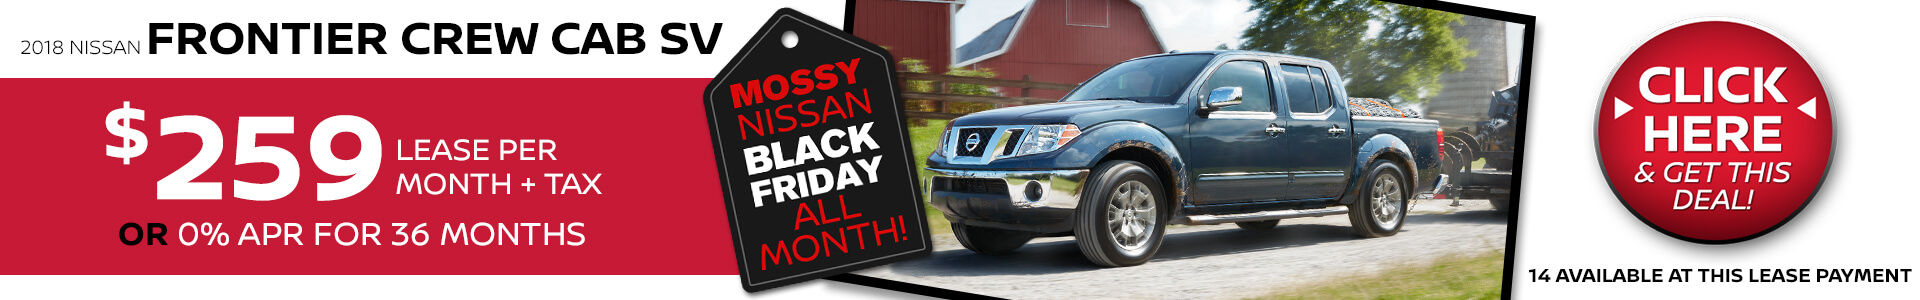 Nissan Frontier $259 Lease